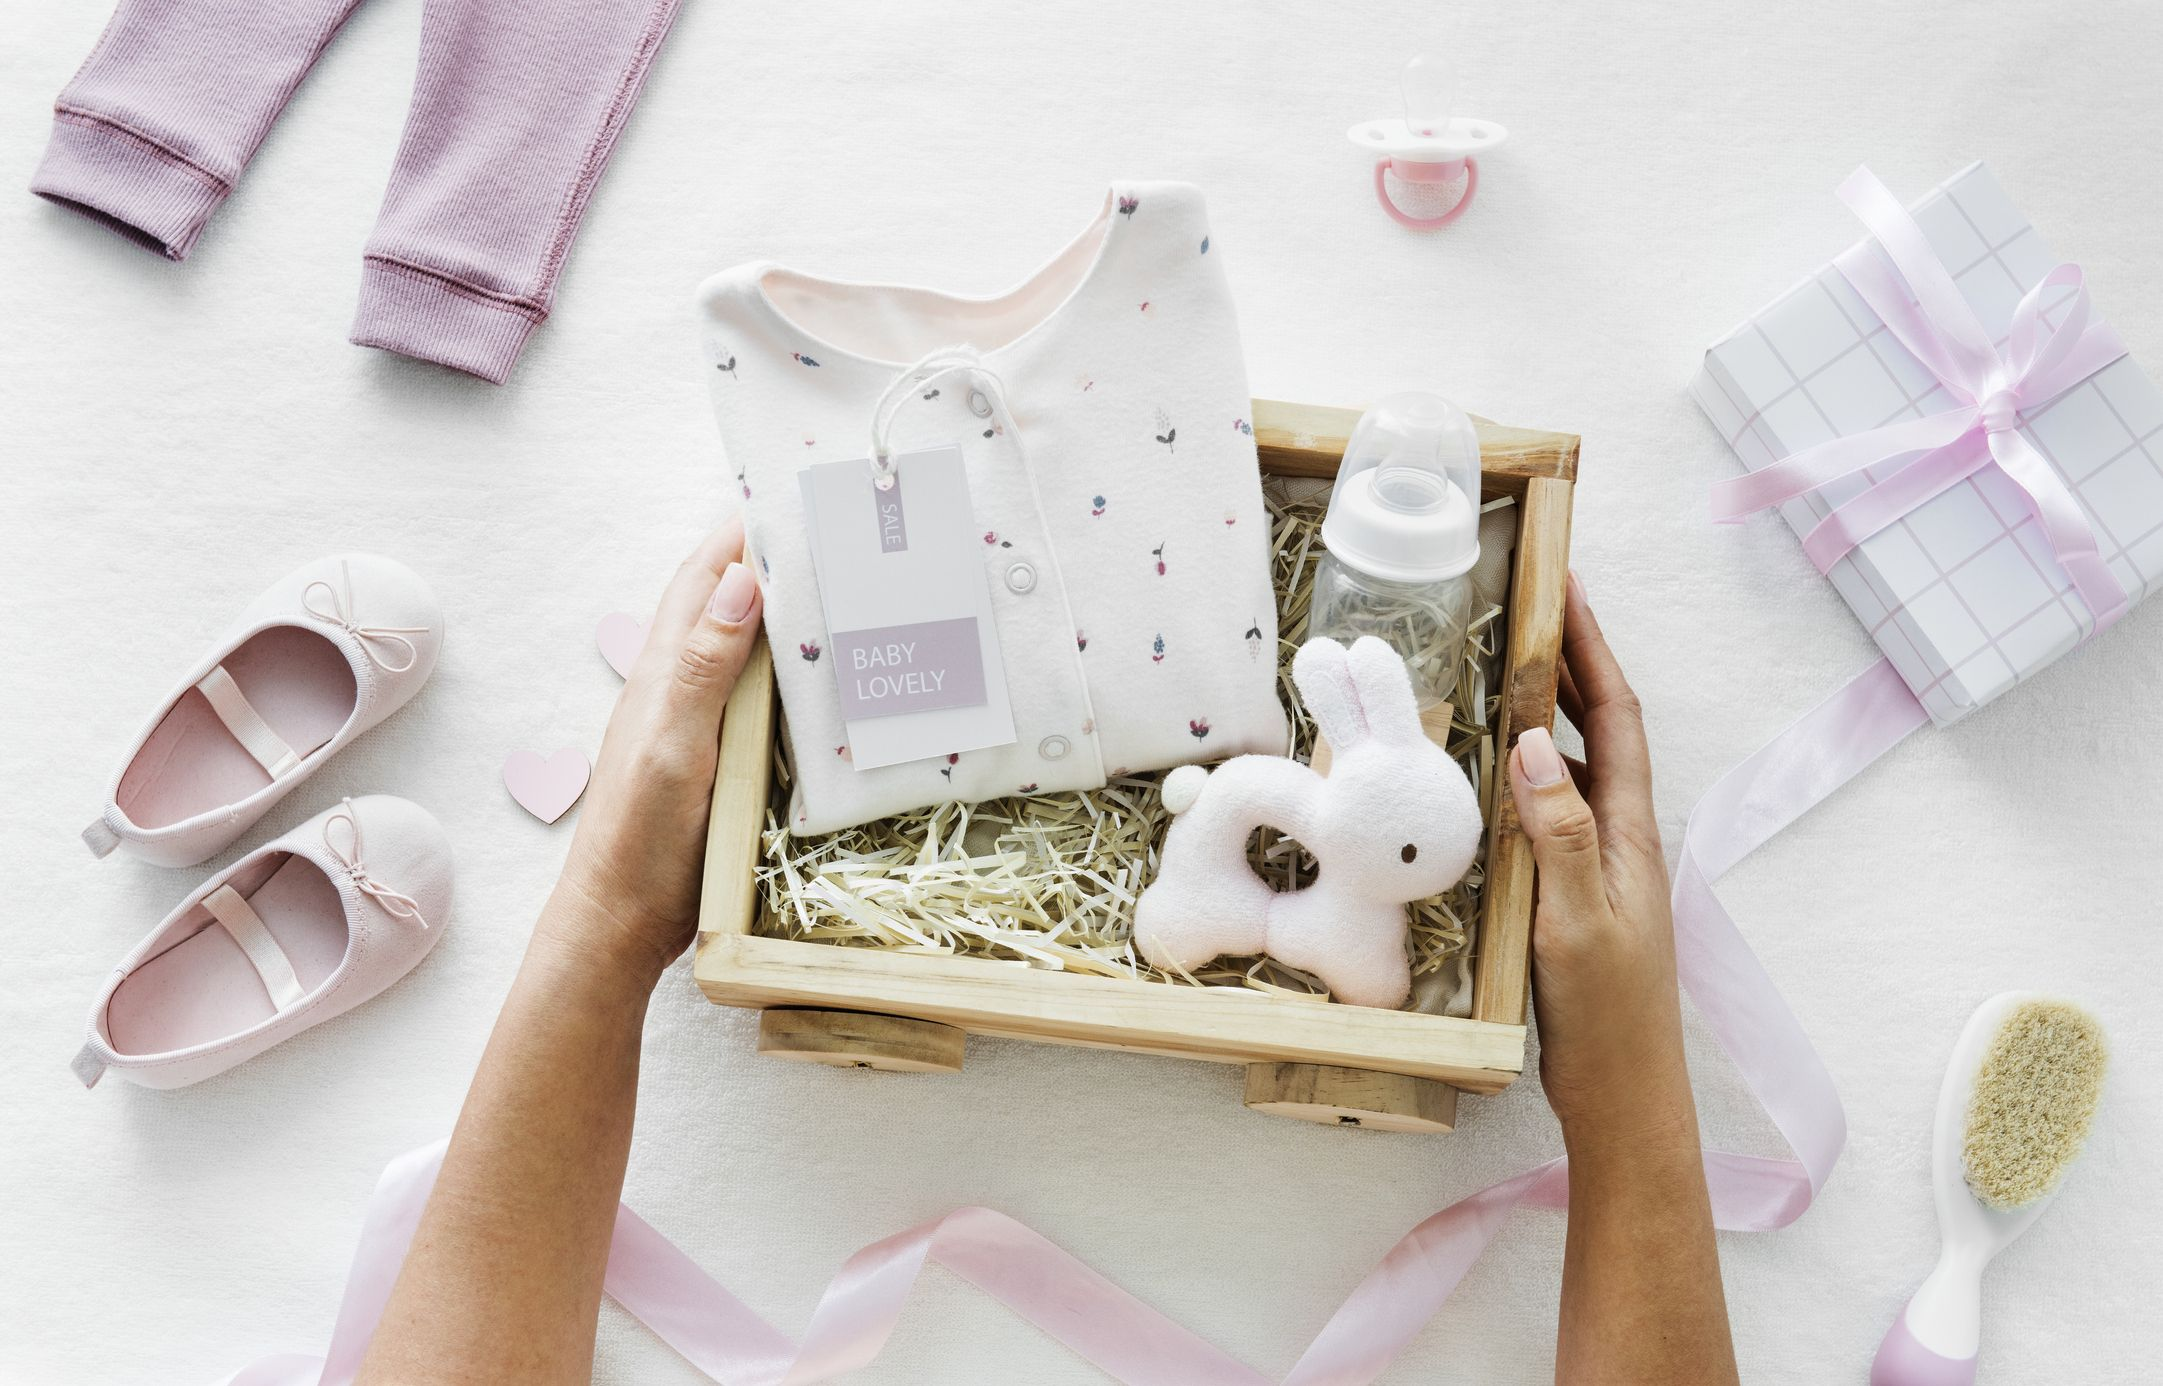 Medium Size Gift Bag for New Baby Baby Gift Bag Perfect Gift Bag for New Baby Girl or Boy Gift Bag Medium Gift Bag Baby Presents Teddy Bear New Baby